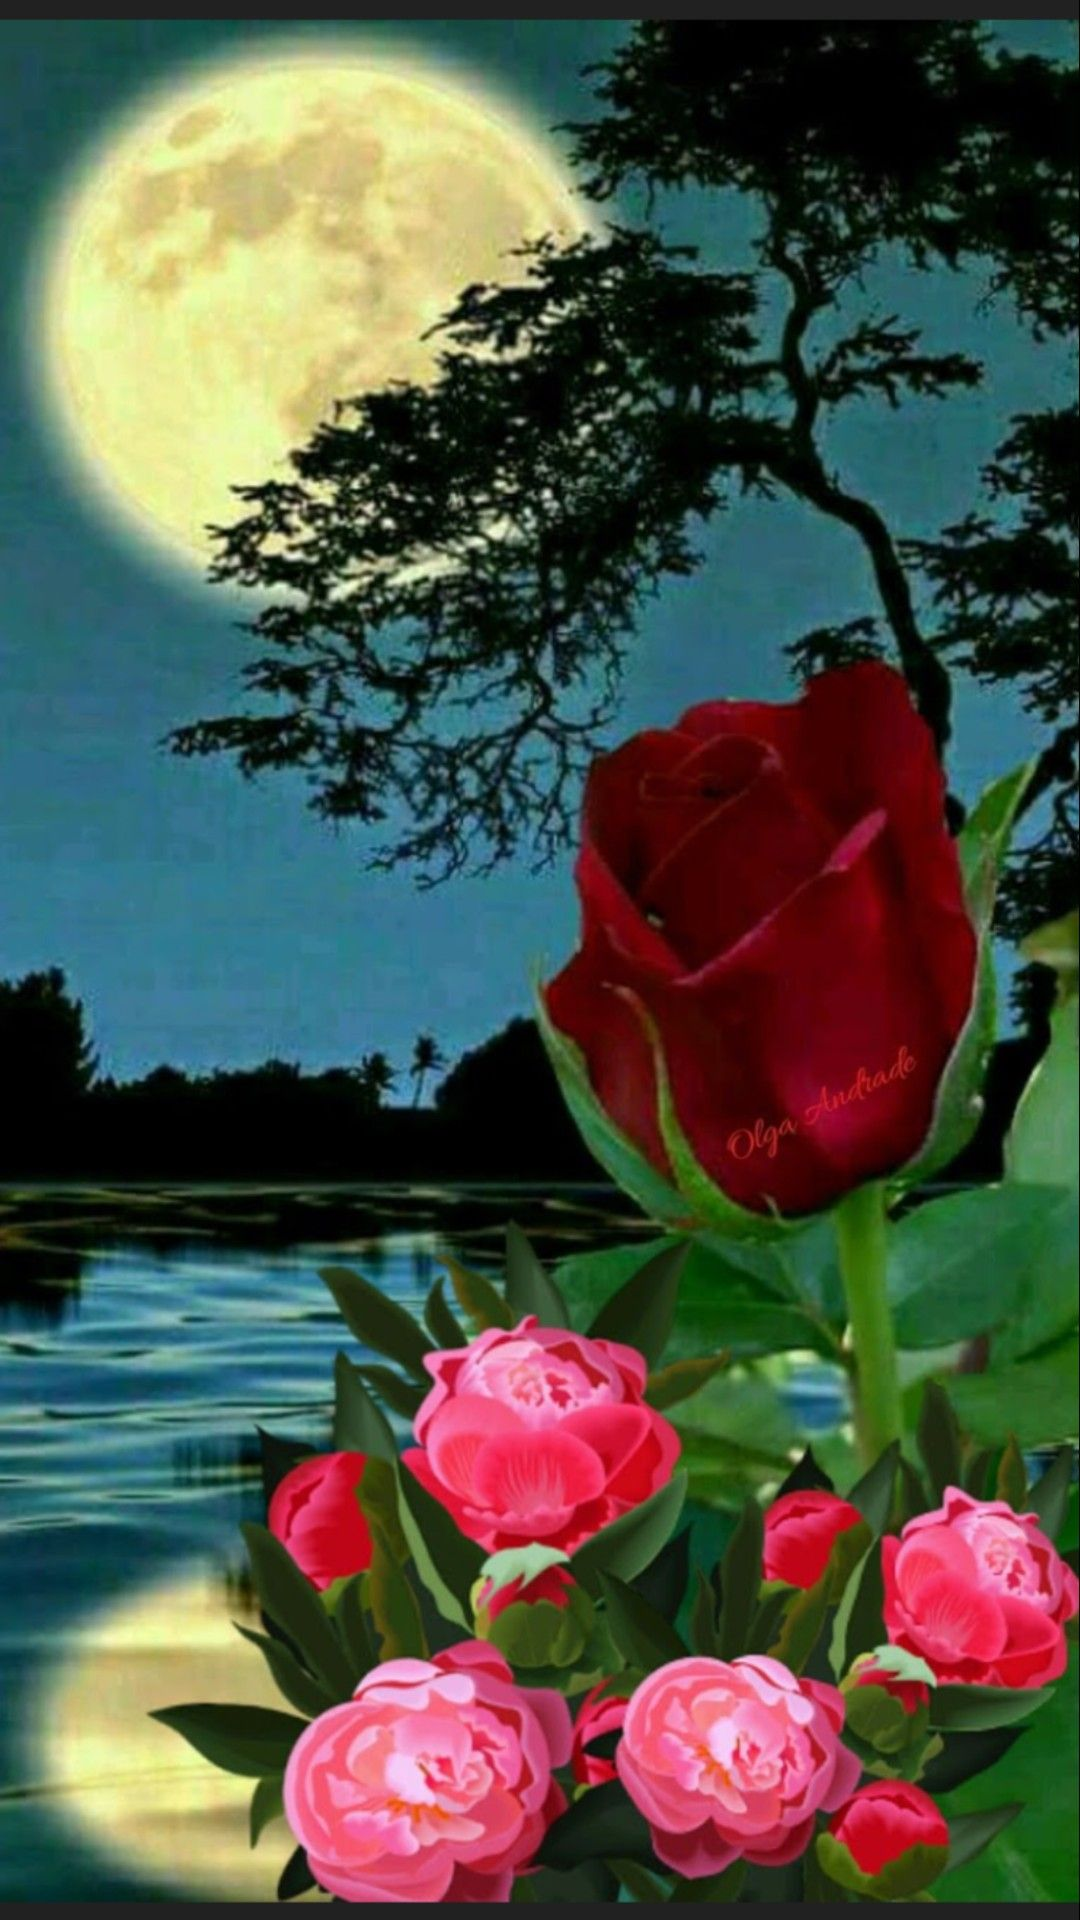 Pin By Elma Mendez On Beautiful Flowers And Roses Beautiful Nature Beautiful Rose Flowers Beautiful Flowers